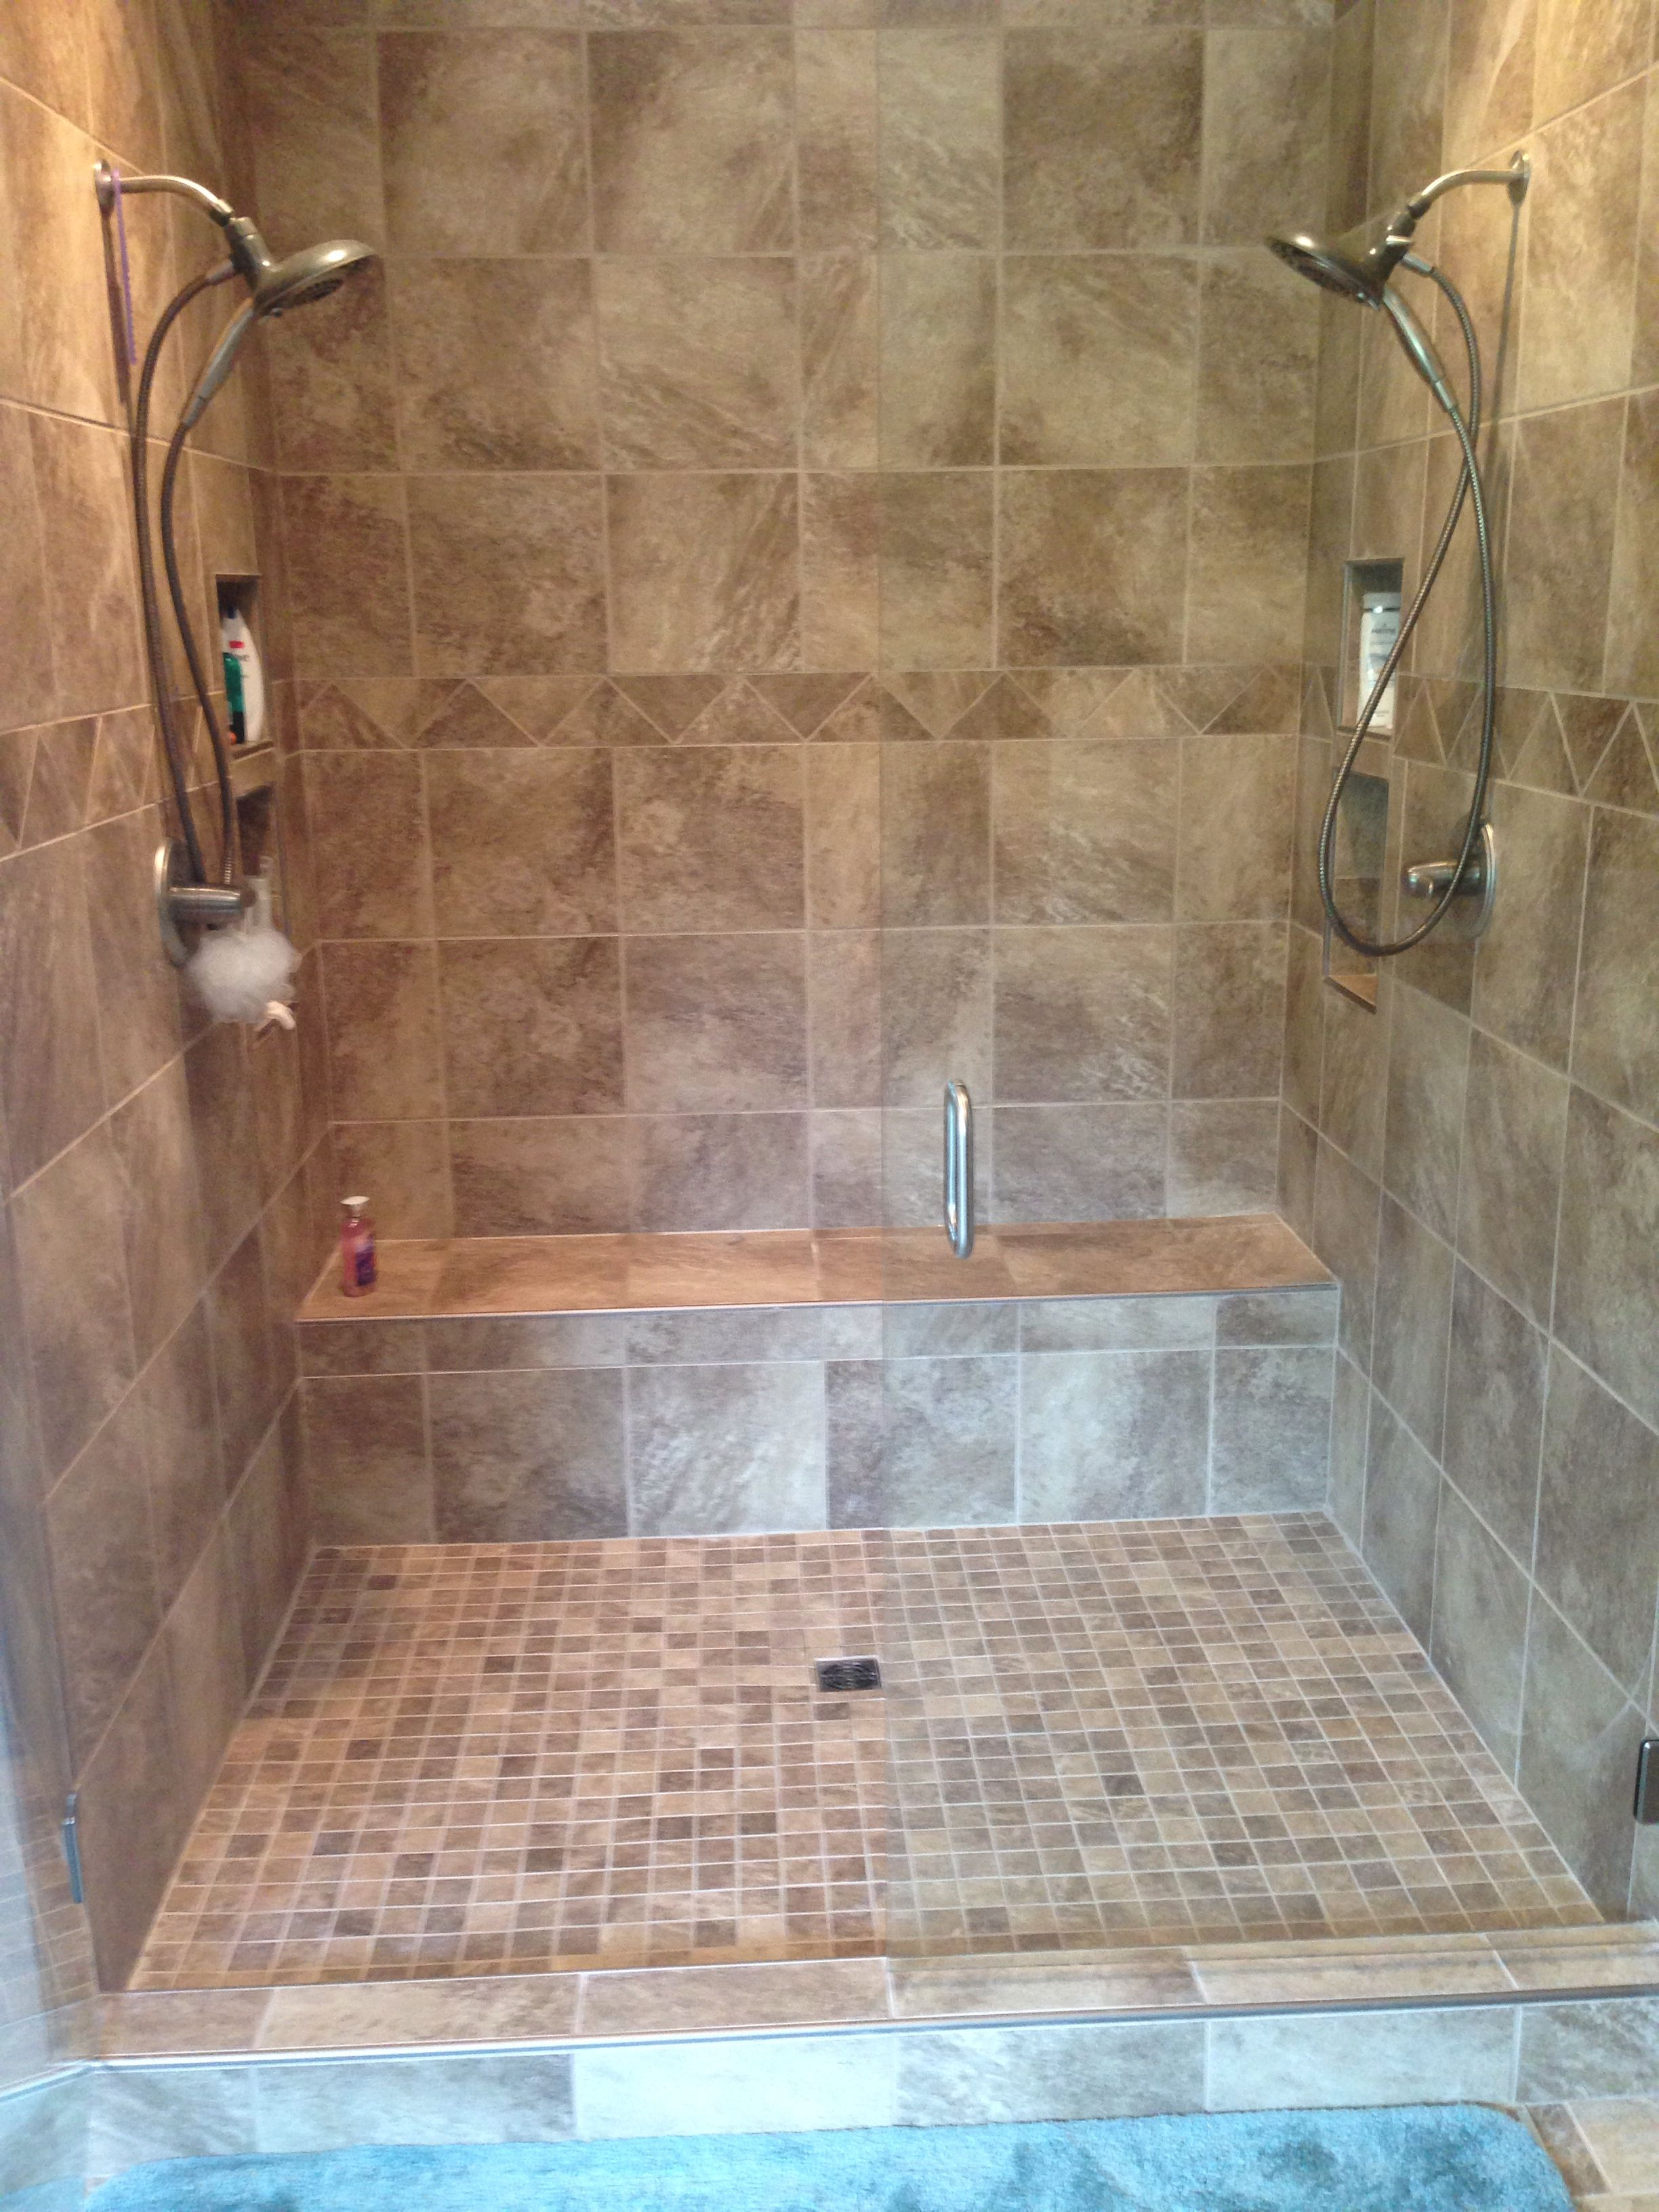 6 Foot Walk In Shower Walk In Shower Bathroom Bathtub